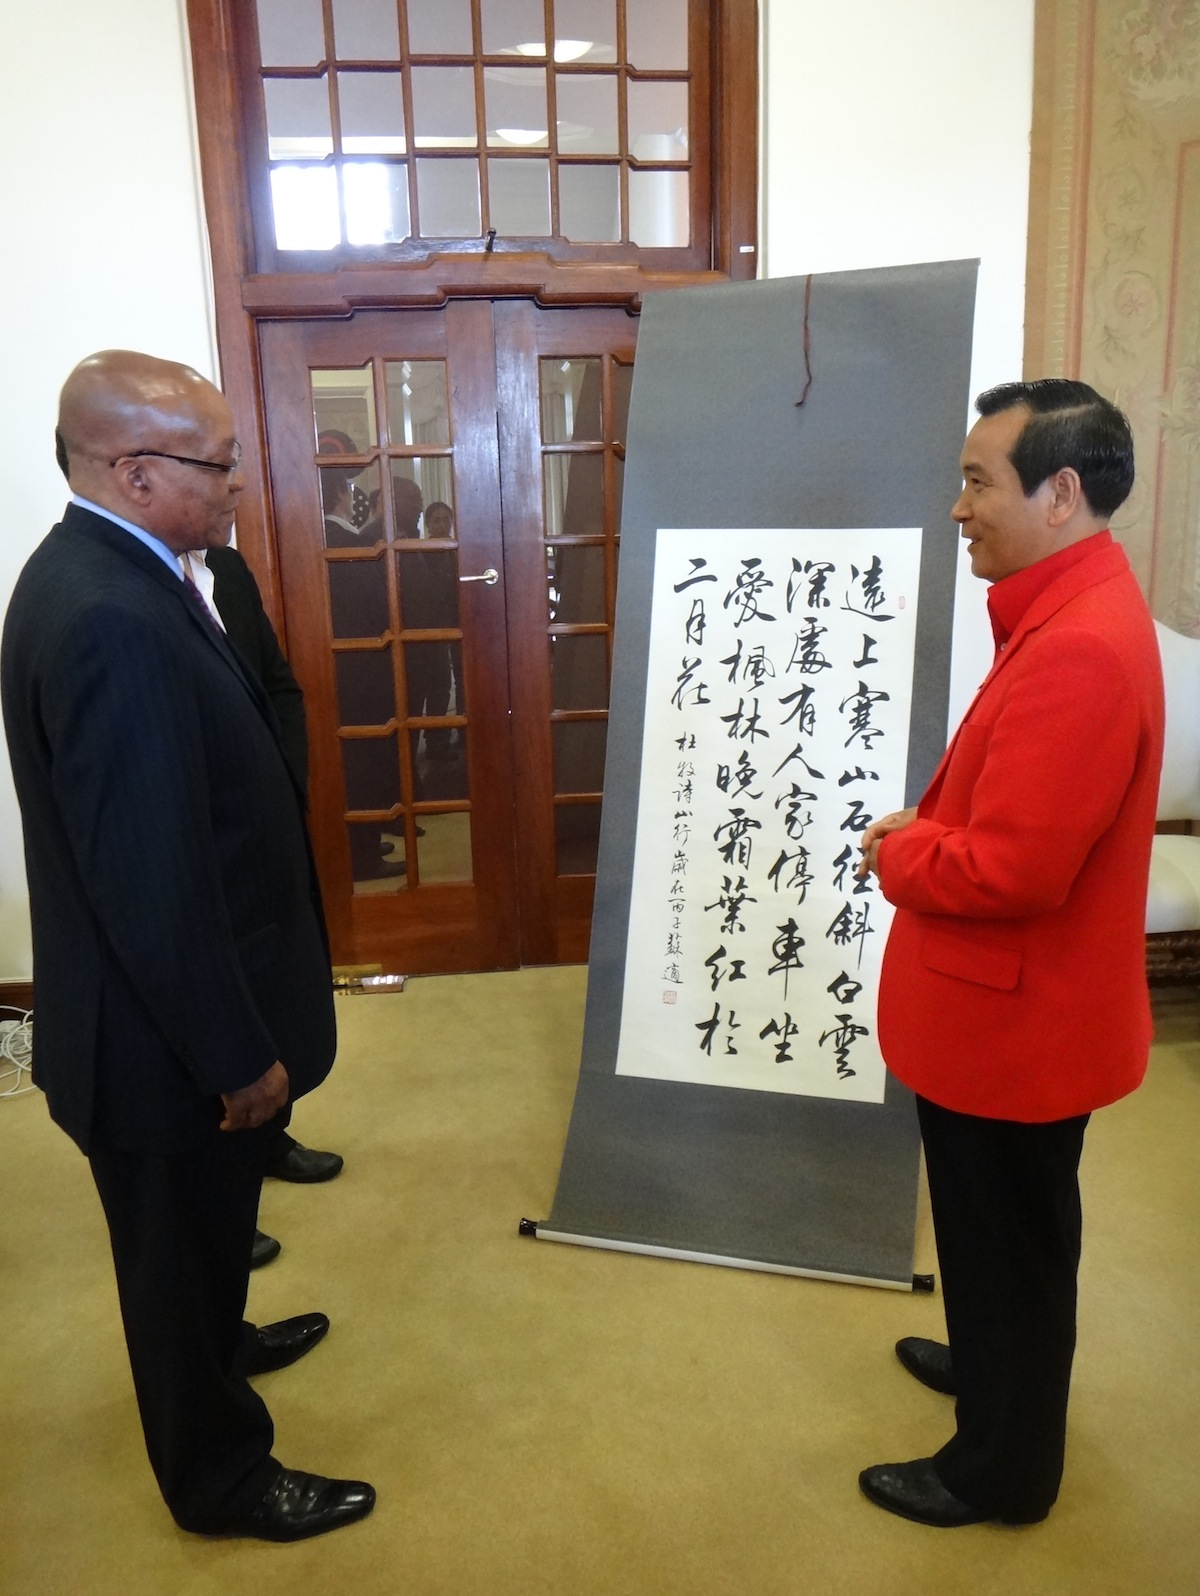 111014 Chinese Caligraphy Presented to Pres Zuma